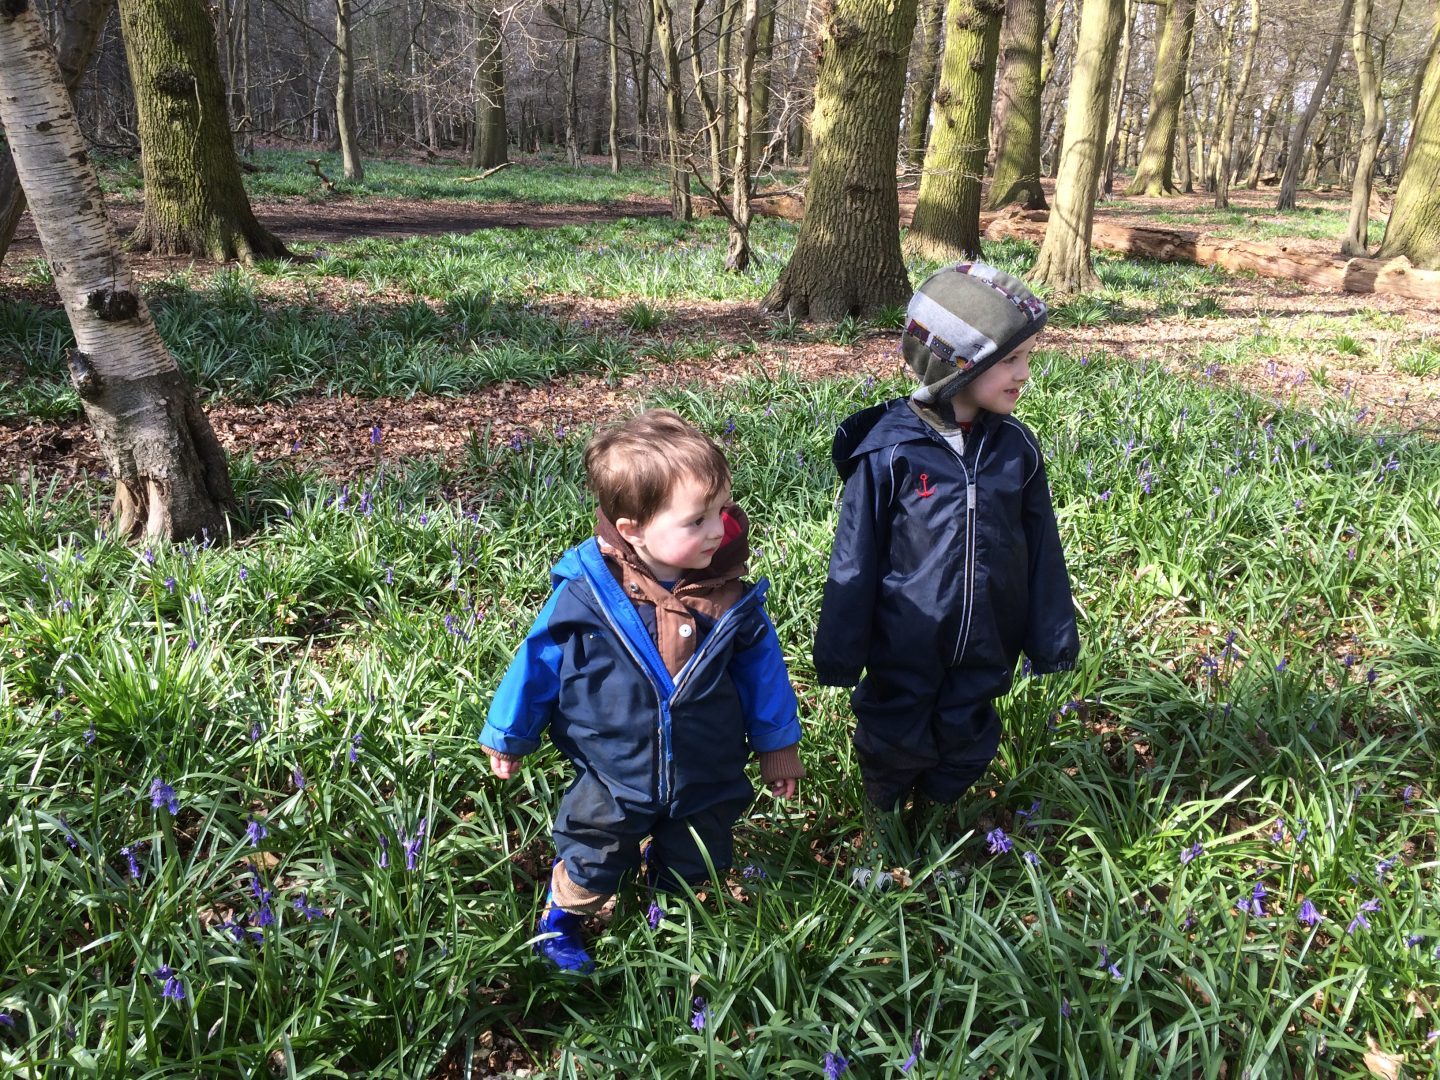 Bluebells in Hertfordshire Bluebells at Panshanger woods, Hertford, early April 2016